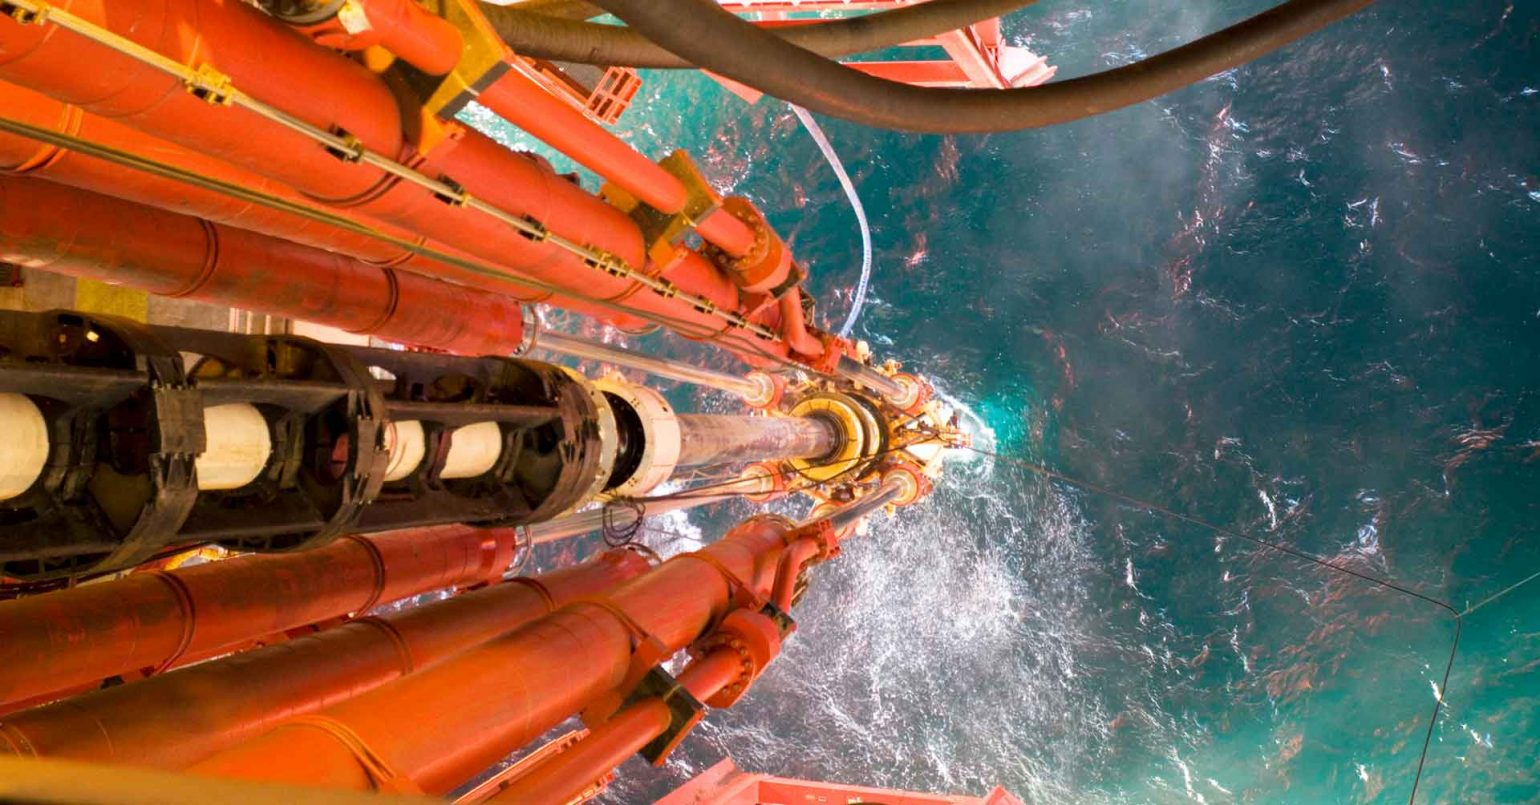 Closeup photo from oil rig with pipes extending down into the sea.